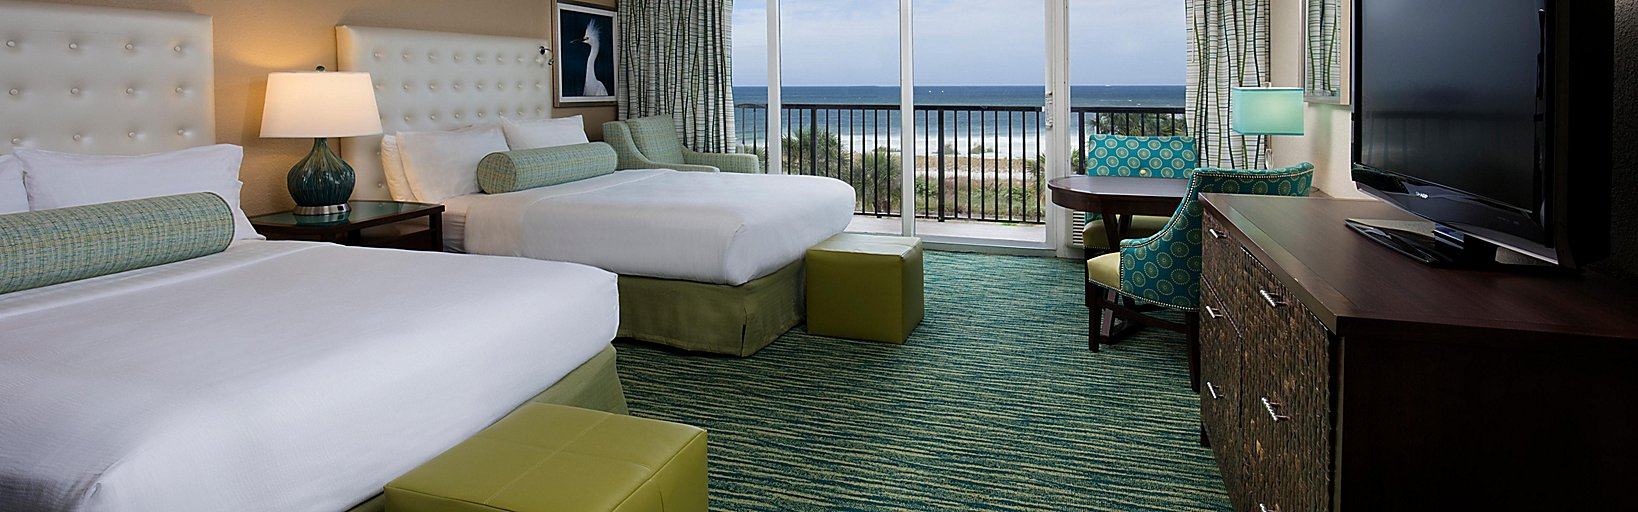 Holiday Inn Sarasota Lido Beach The